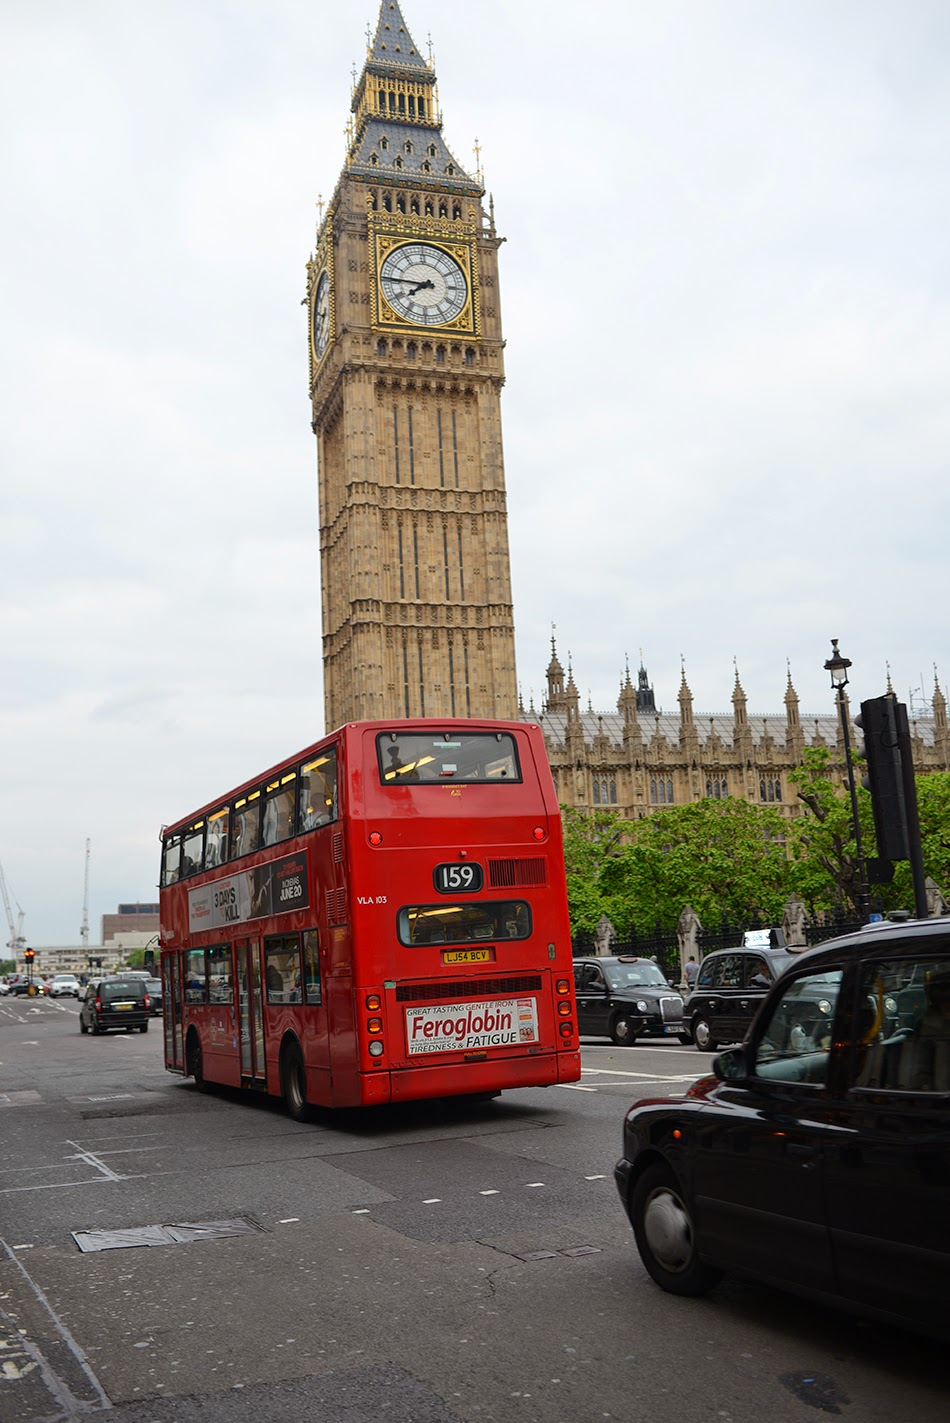 arriving back to one of my favorite places ever london the double decker red bus s phone booths and architecture just get me going  [ 950 x 1423 Pixel ]